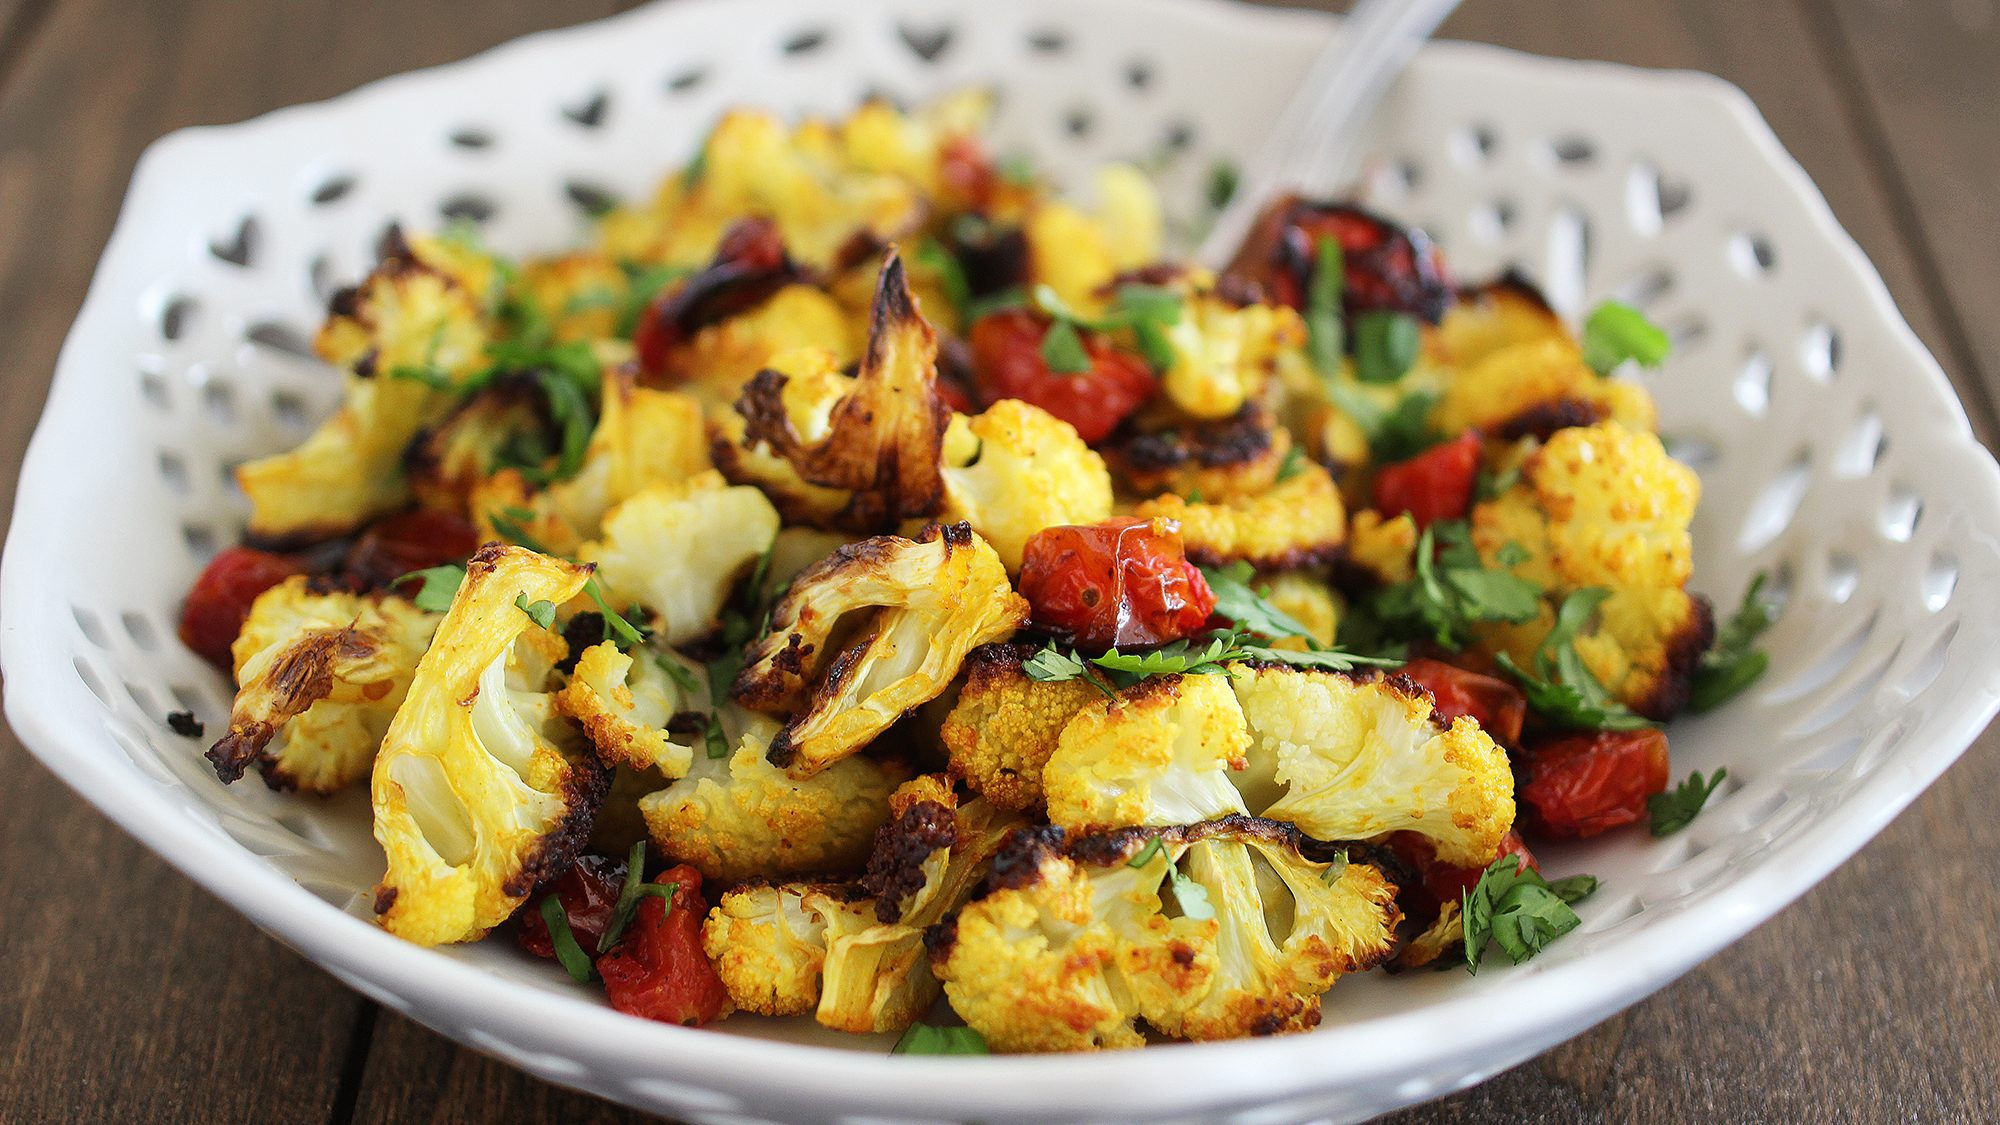 turmeric-roasted-cauliflower-and-tomatoes-the-comfort-of-cooking.jpg